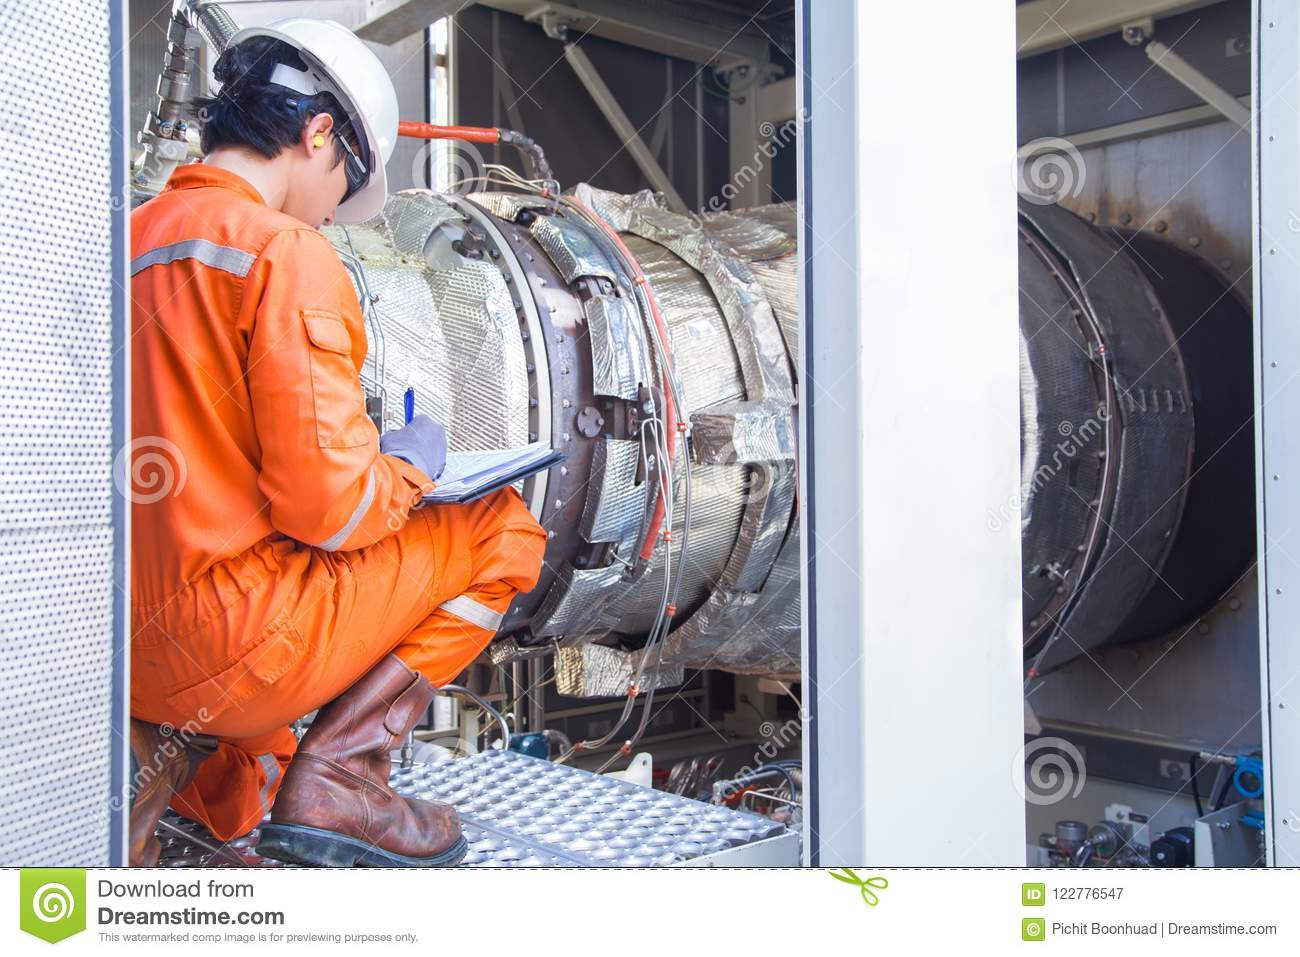 Mechanical engineering inspector checking gas turbine engine inside package enclosure .